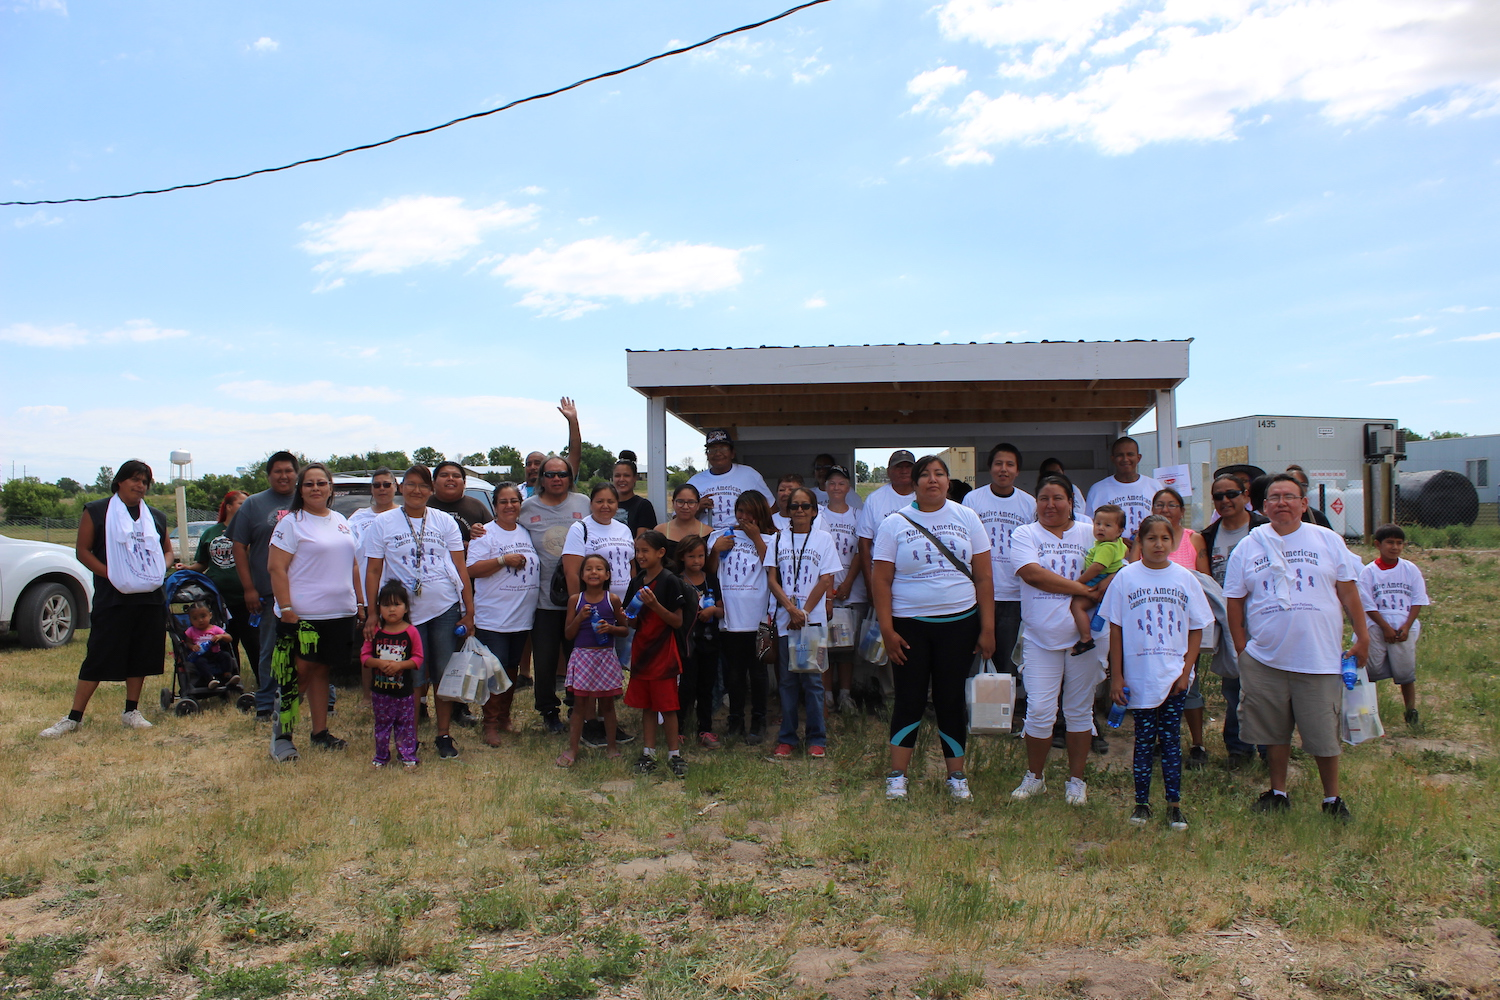 Lakota Country Times: Oglala Sioux Tribe hosts walk for cancer